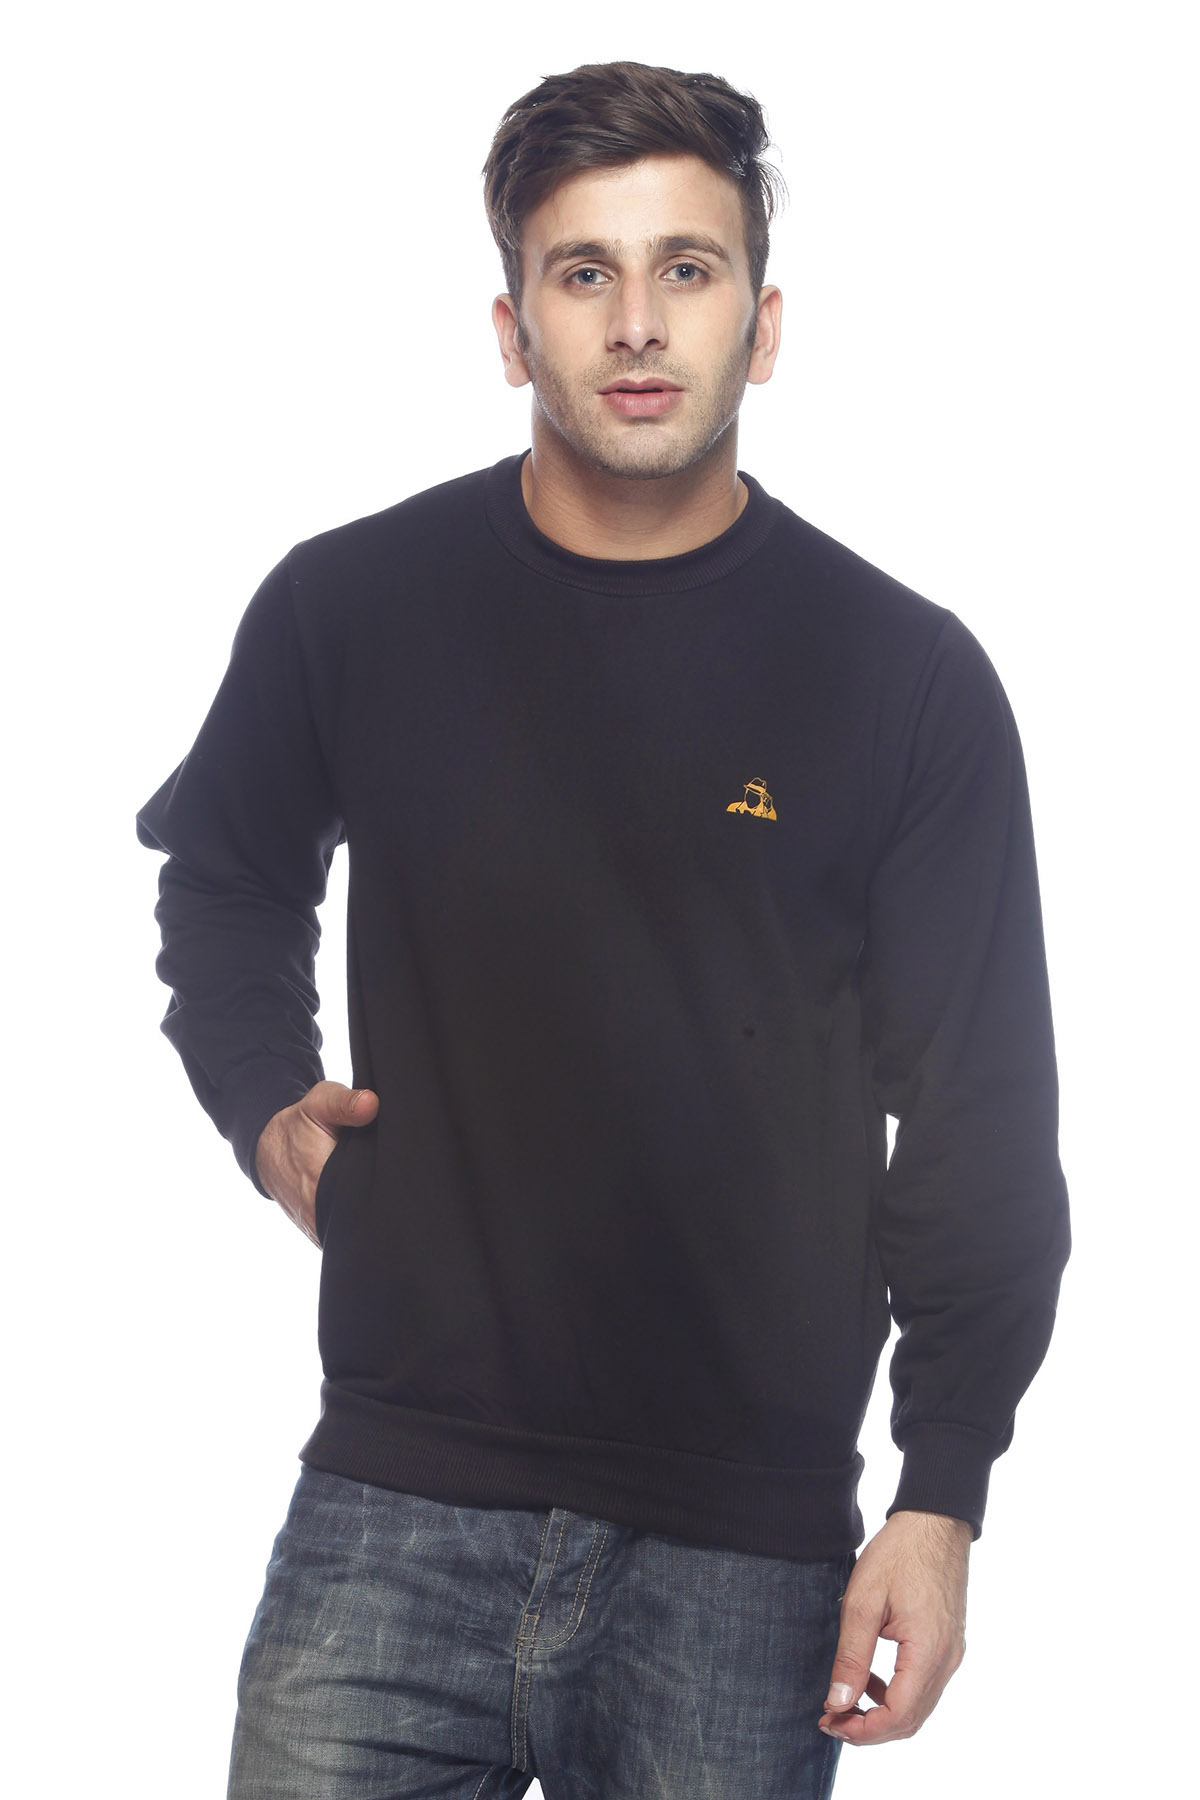 DS Solid Black Cotton Casual Sweatshirt